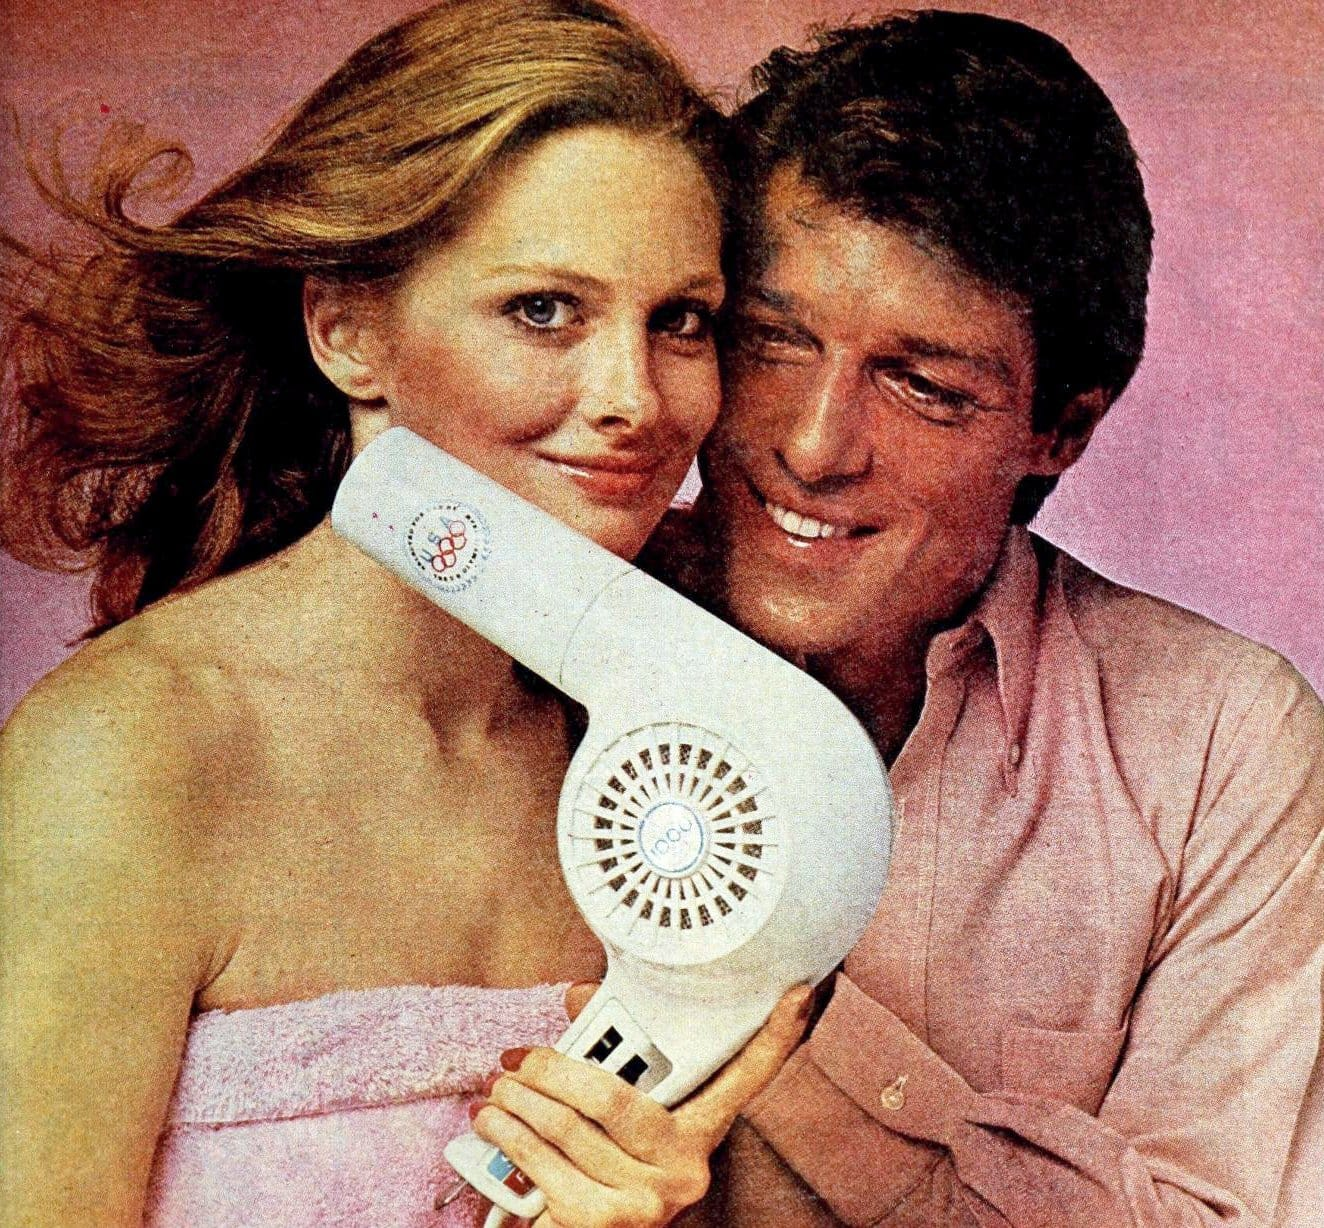 Vintage blow dryers for hair from the 1970s